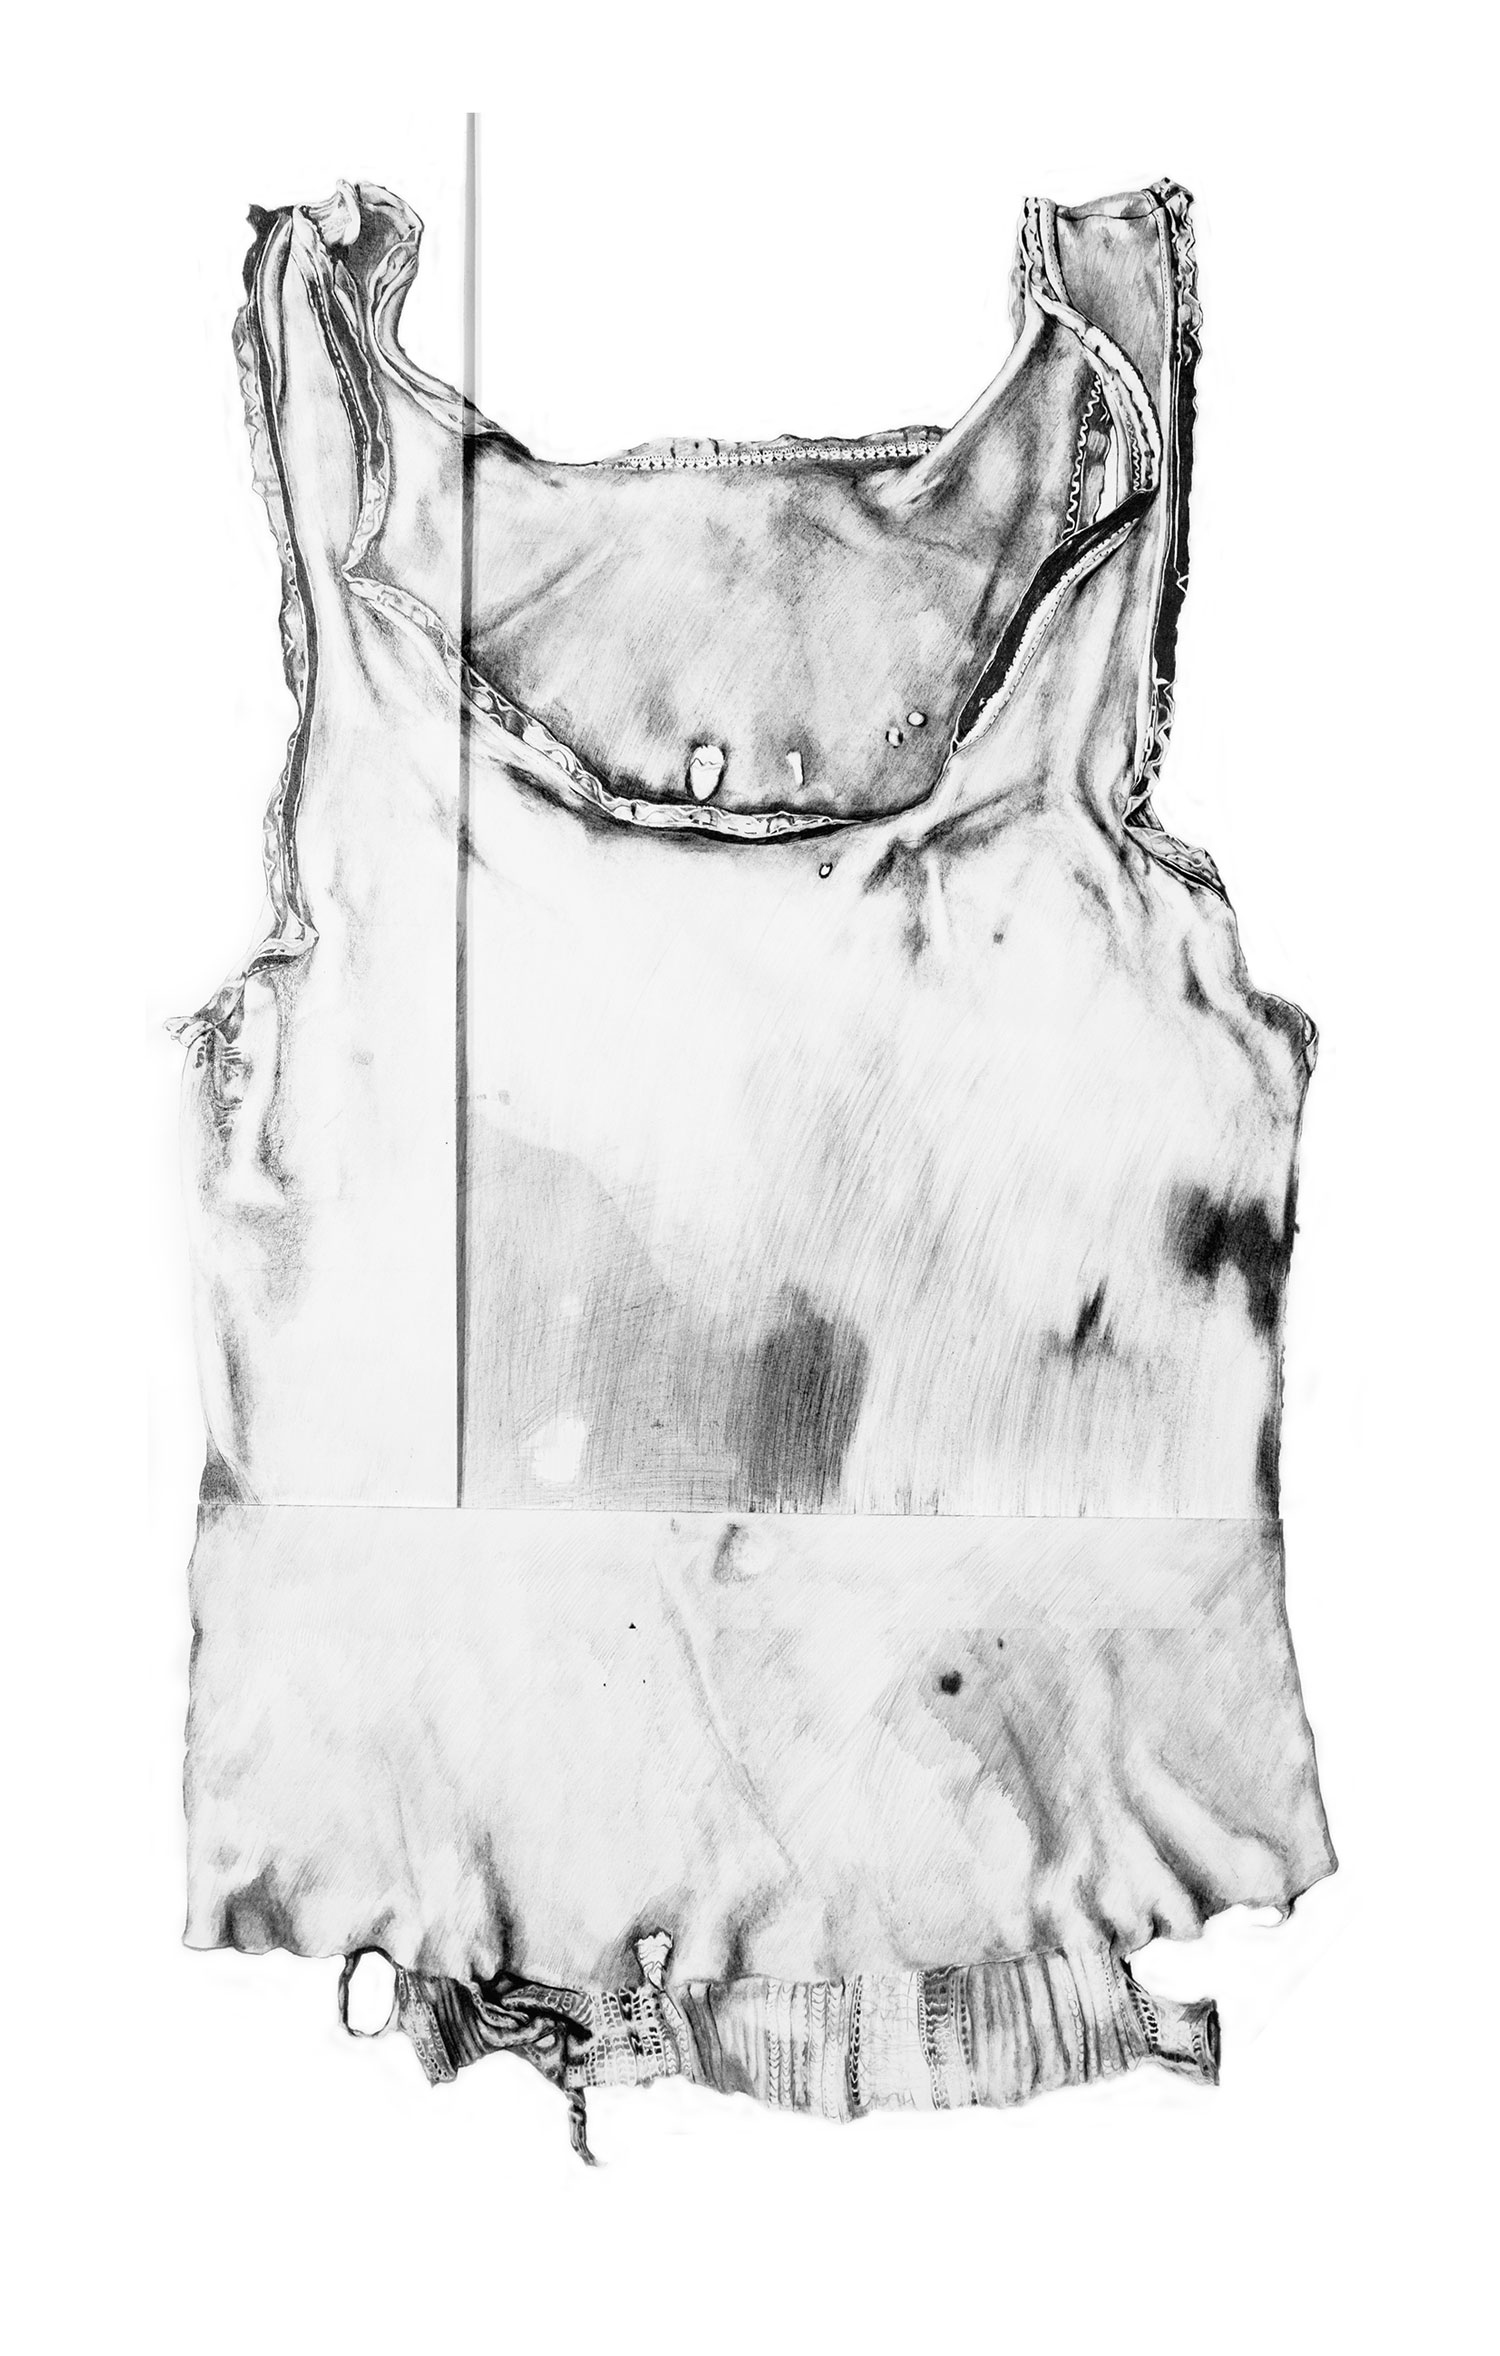 Singlet   Materials:  Graphite on paper   Date of Creation:  2006  Collection of Wardlow Art Residency